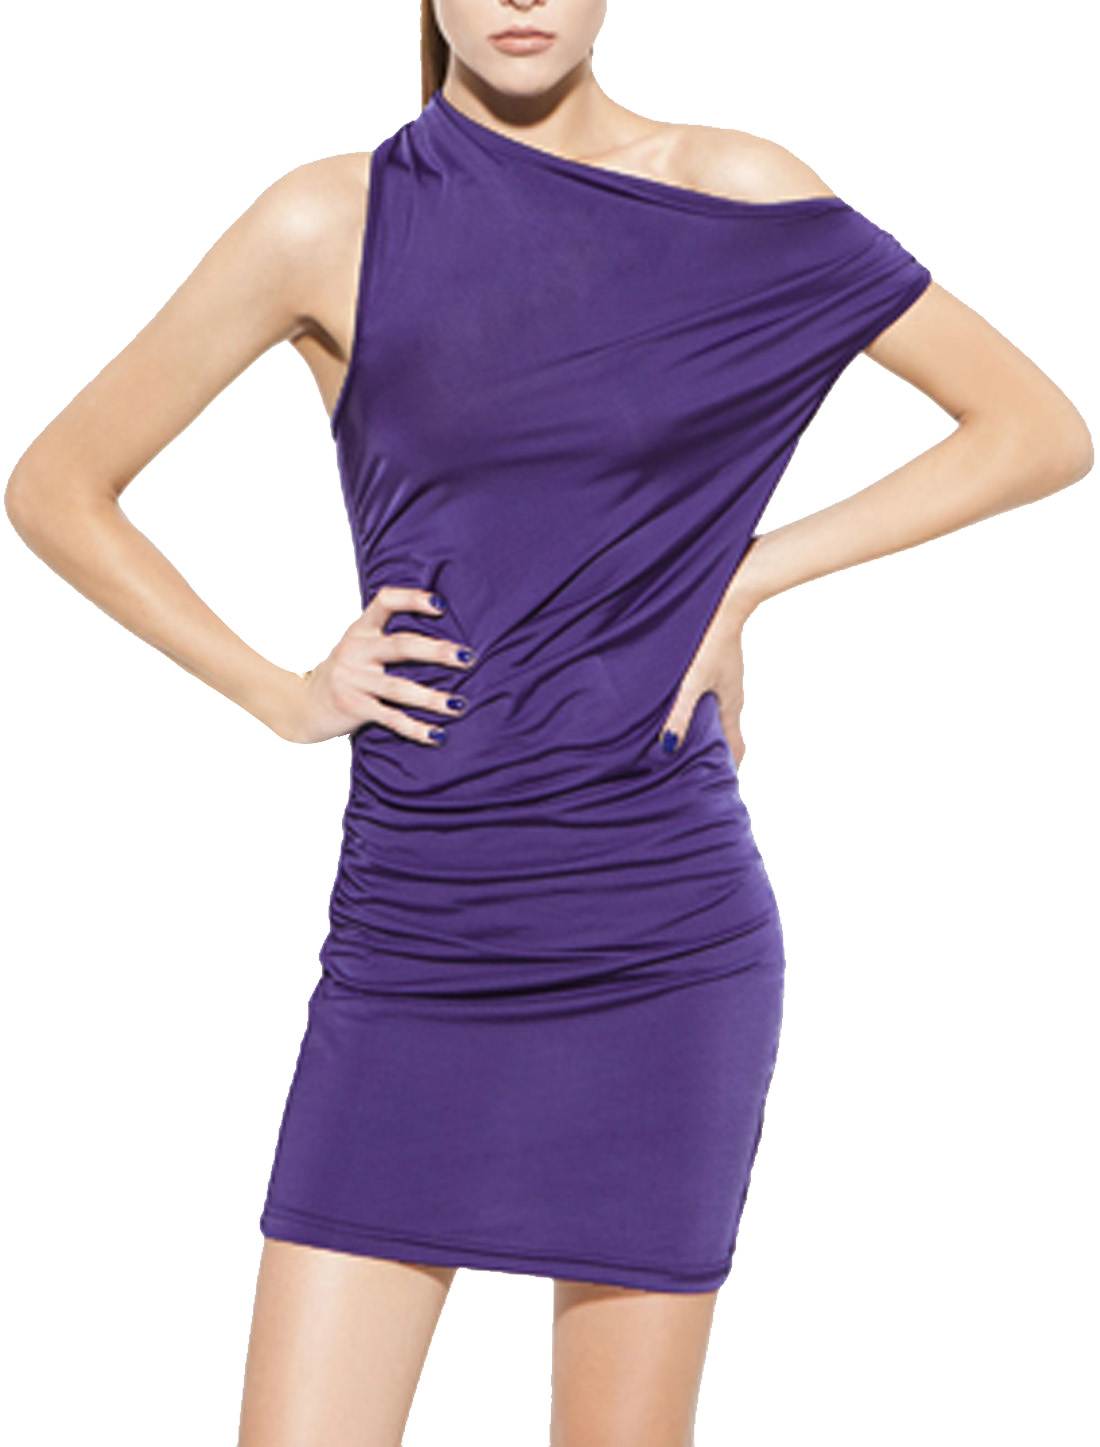 Woman Steath Waist Hip Hugging Off Shoulder Ruffled Mini Dress Purple XS